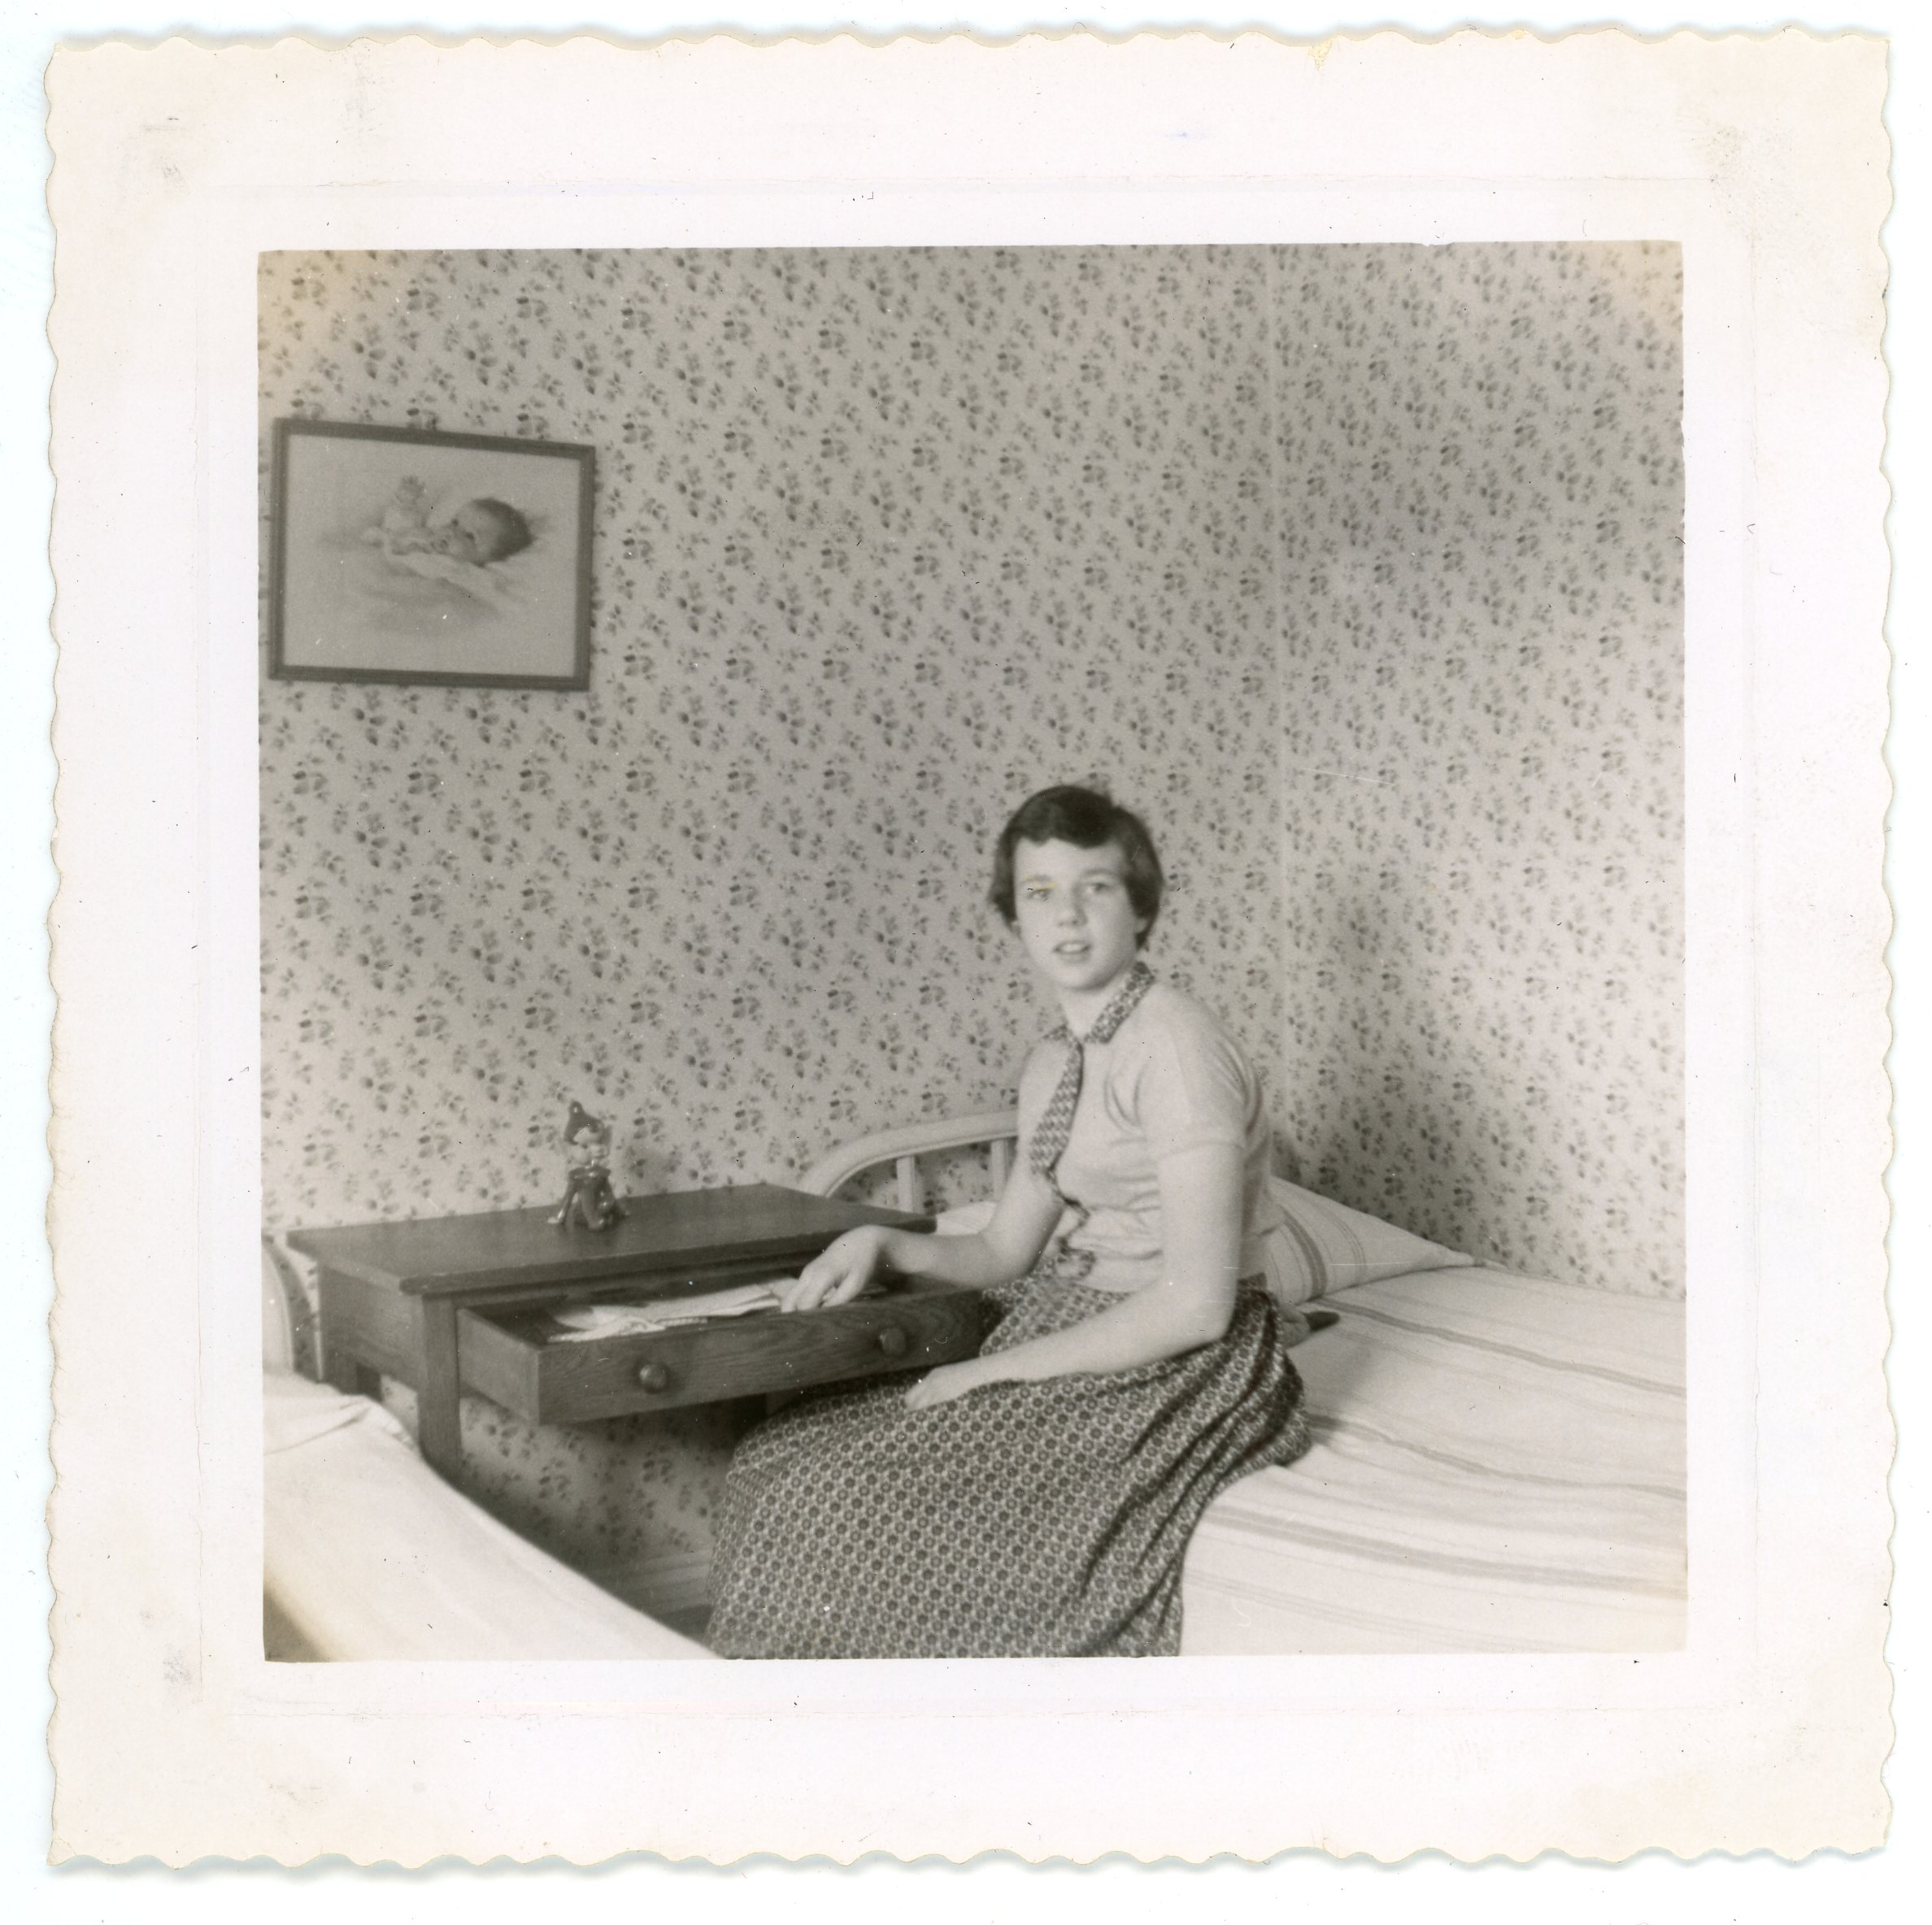 Depiction of Joanne Fortune in her dorm room, photo by Nancy Arena